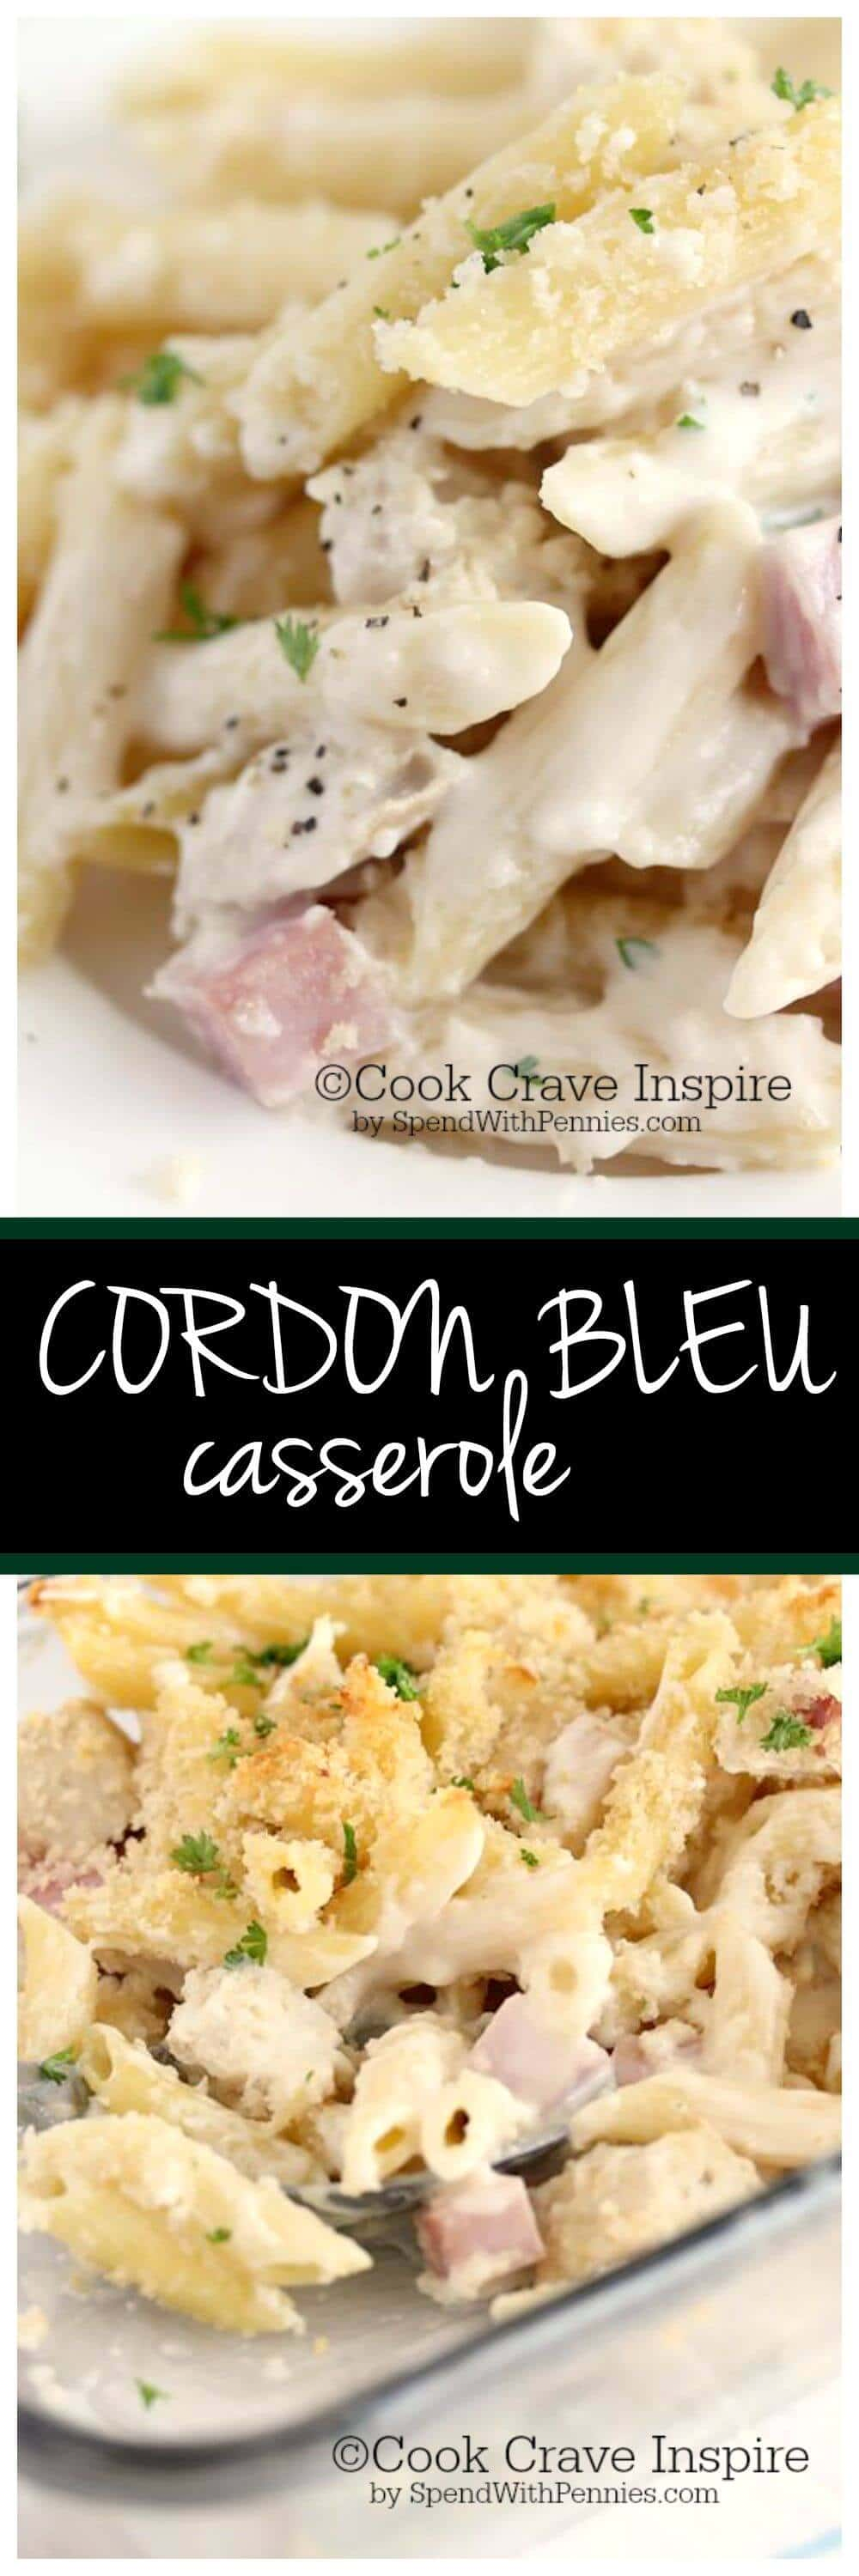 This delicious creamy Cordon Bleu casserole is loaded with chicken, ham & swiss! It's really easy to make from scratch, no canned soup required!